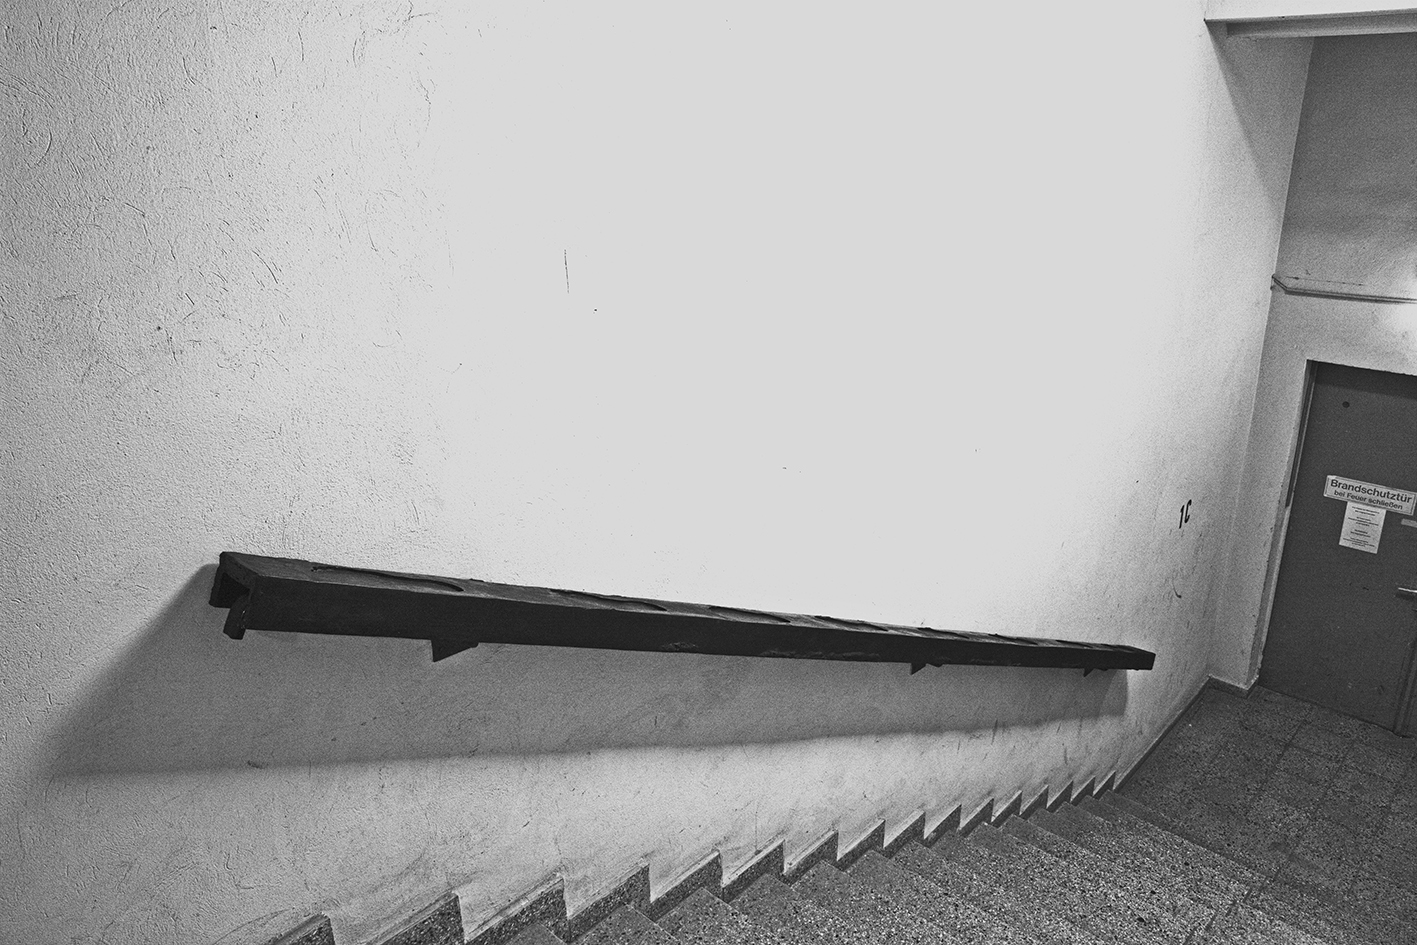 black and white photo of a staircase with a black sculpture by Erik Andersen placed on the handrail.